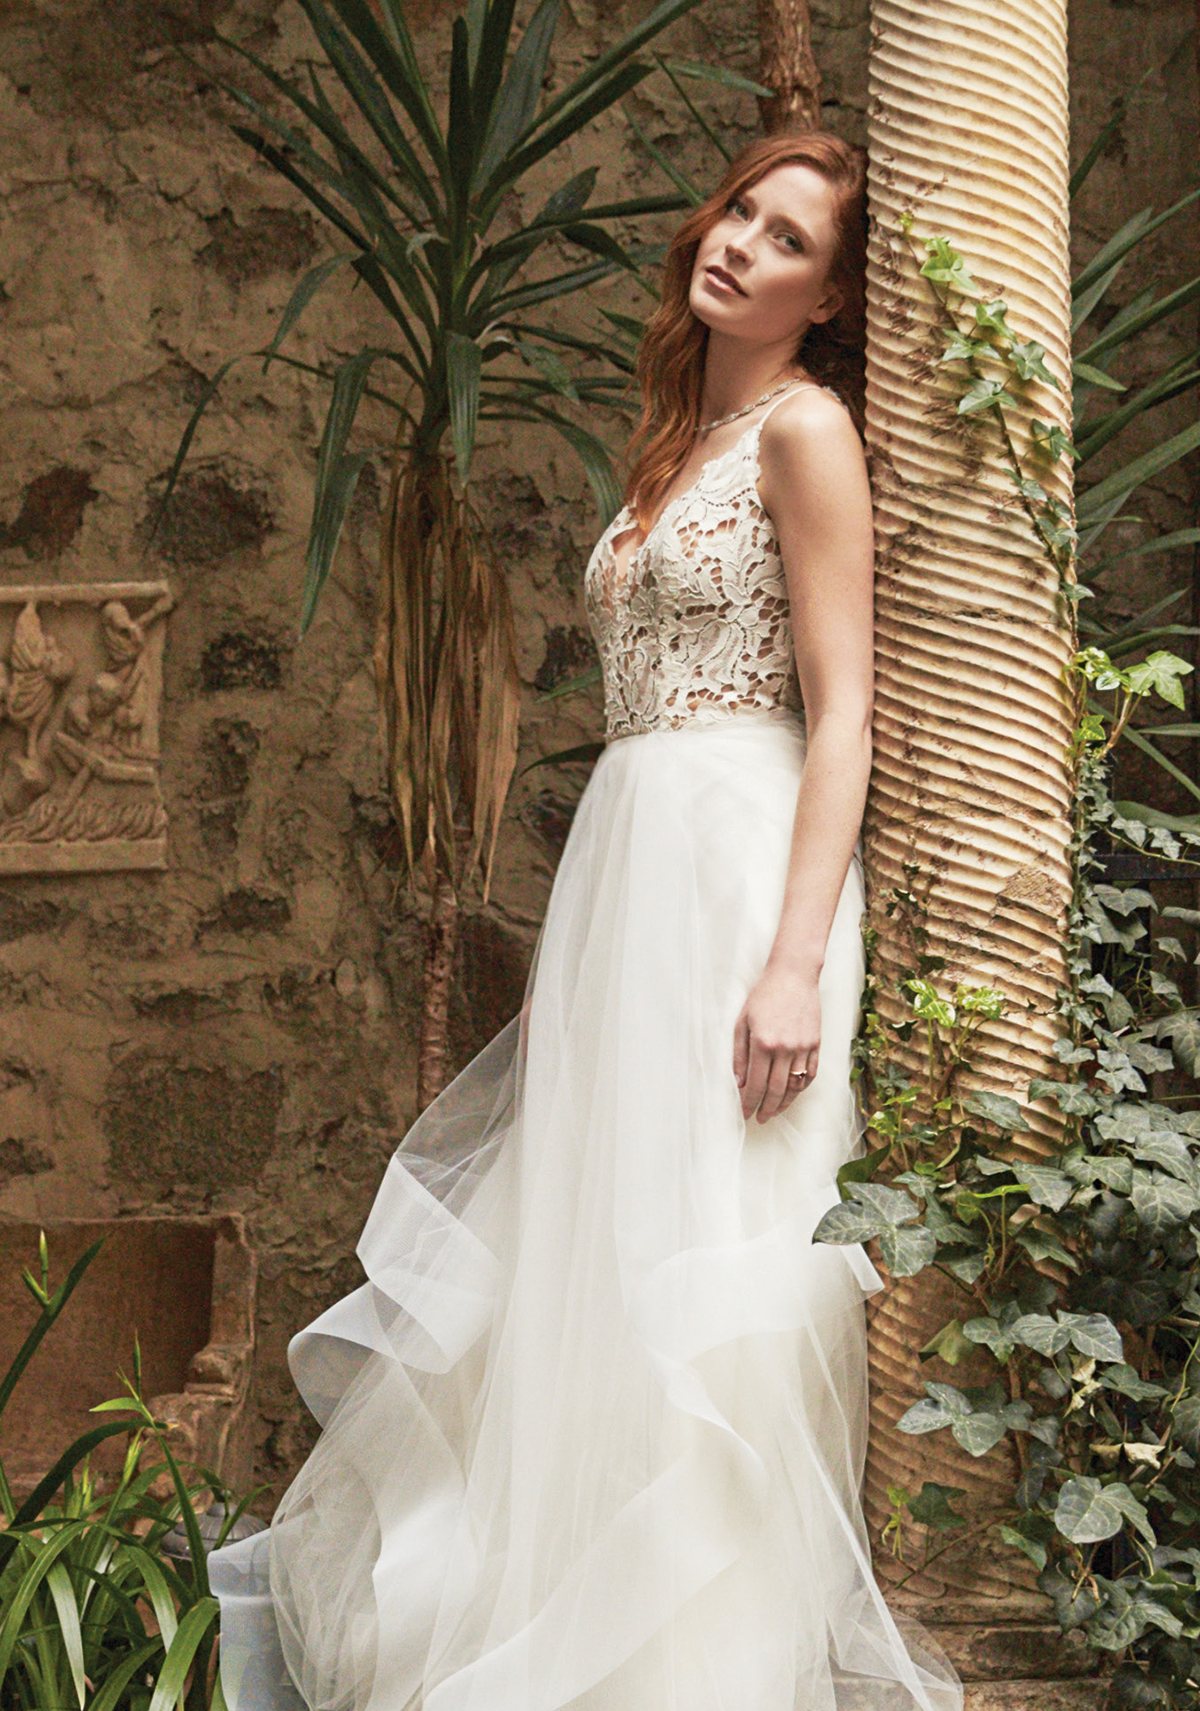 wedding-fashion-storybook-romance-7